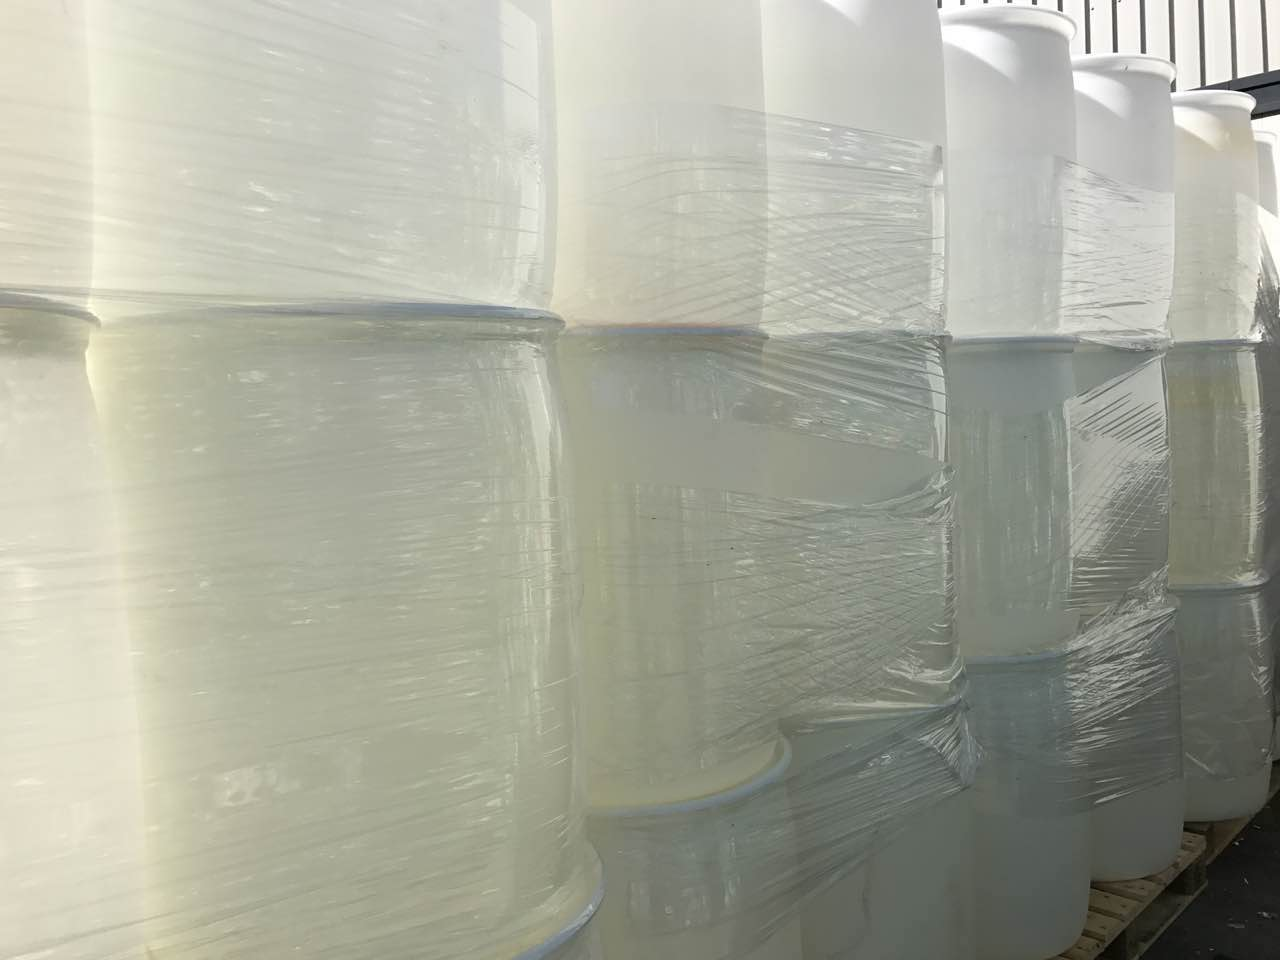 HDPE drums in bales